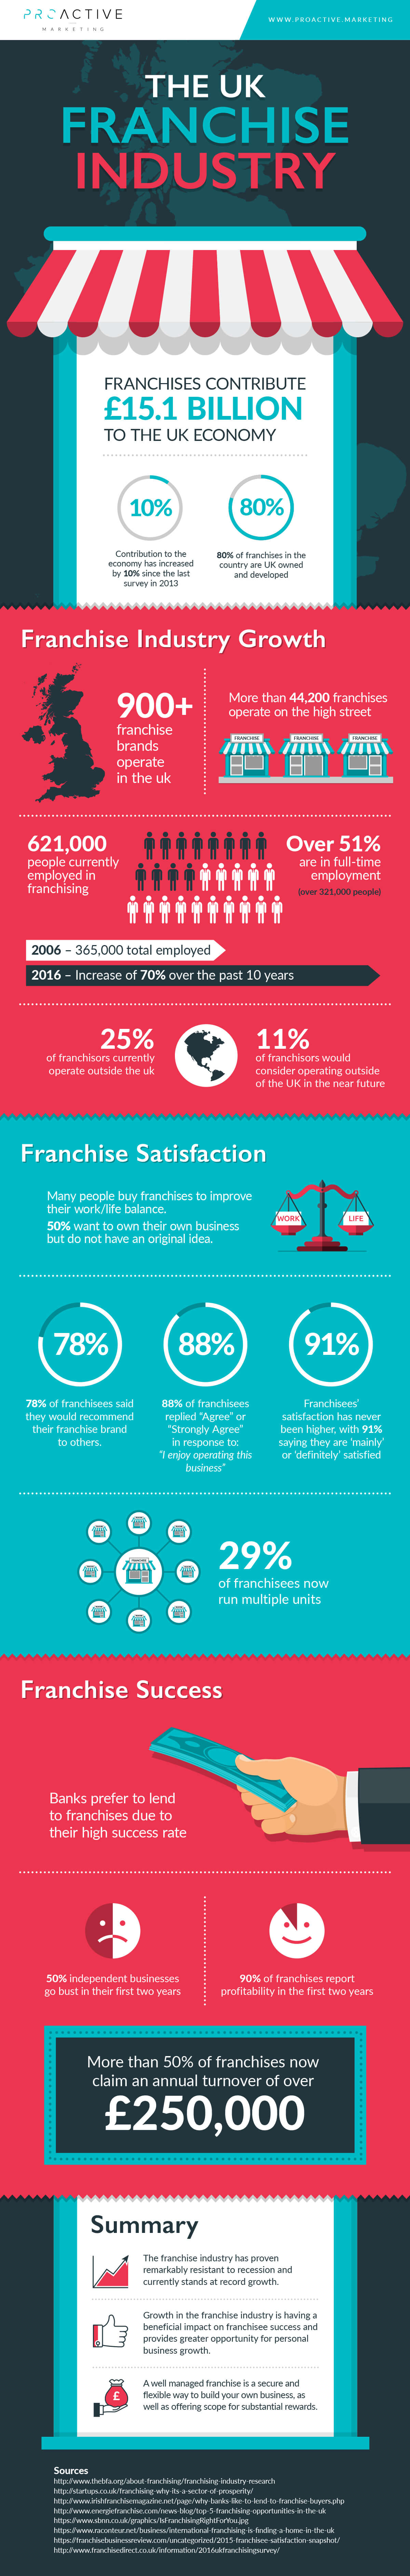 UK Franchise Industry